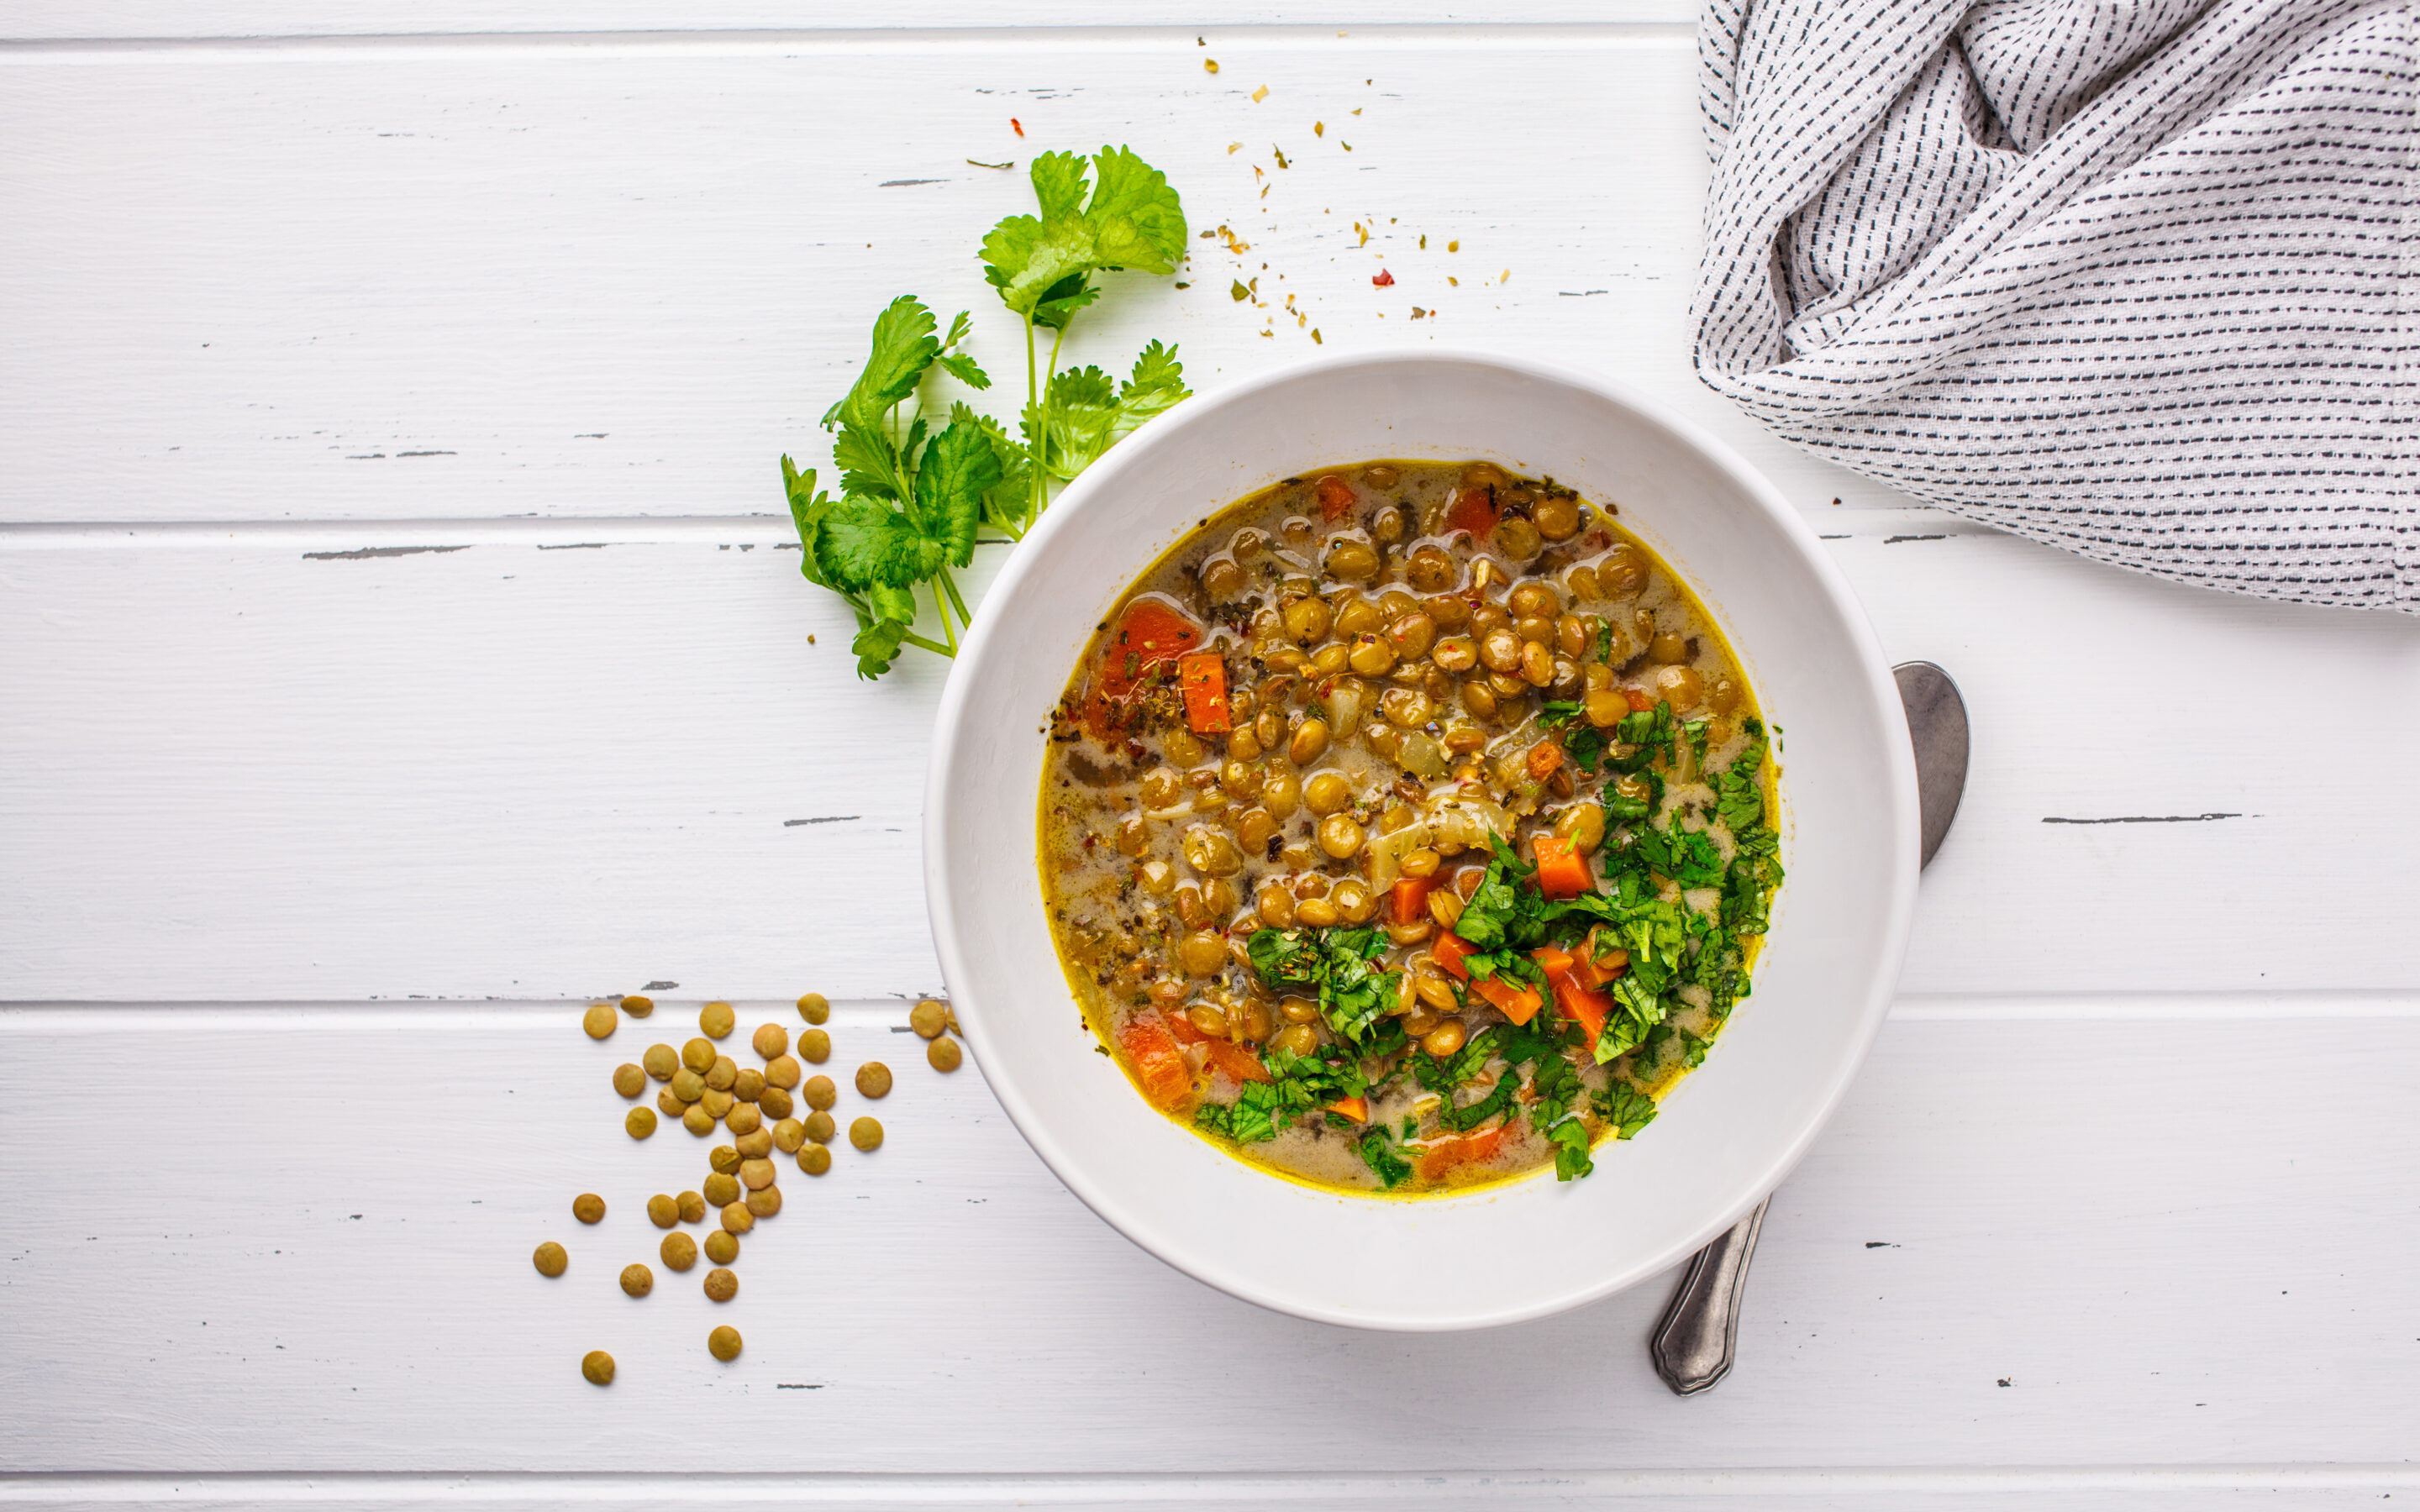 Bowl of homemade lentil soup